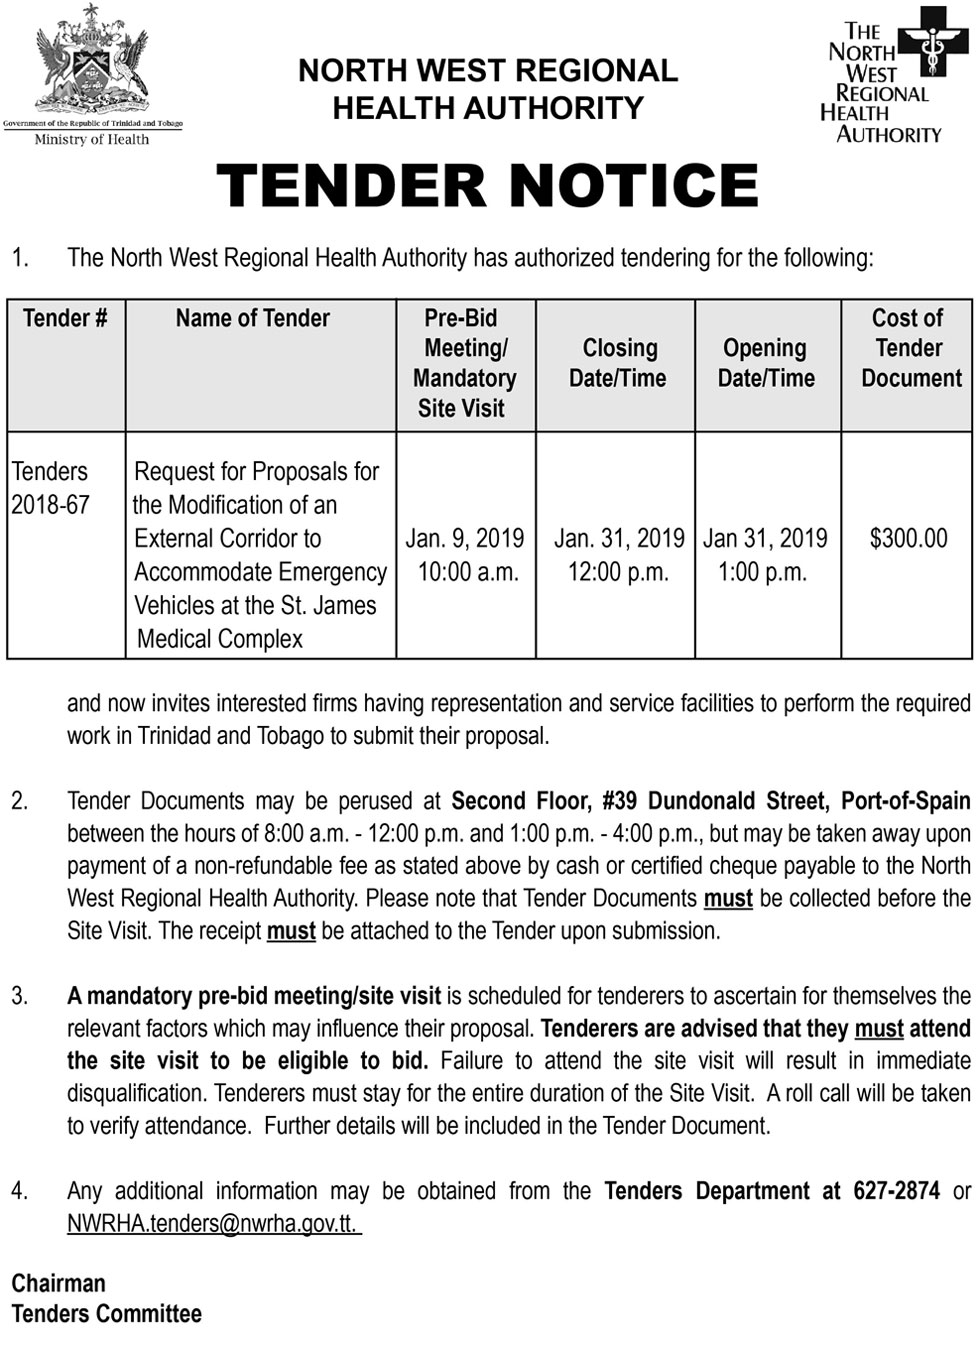 Tender Notice Request For Proposal For Modification Of